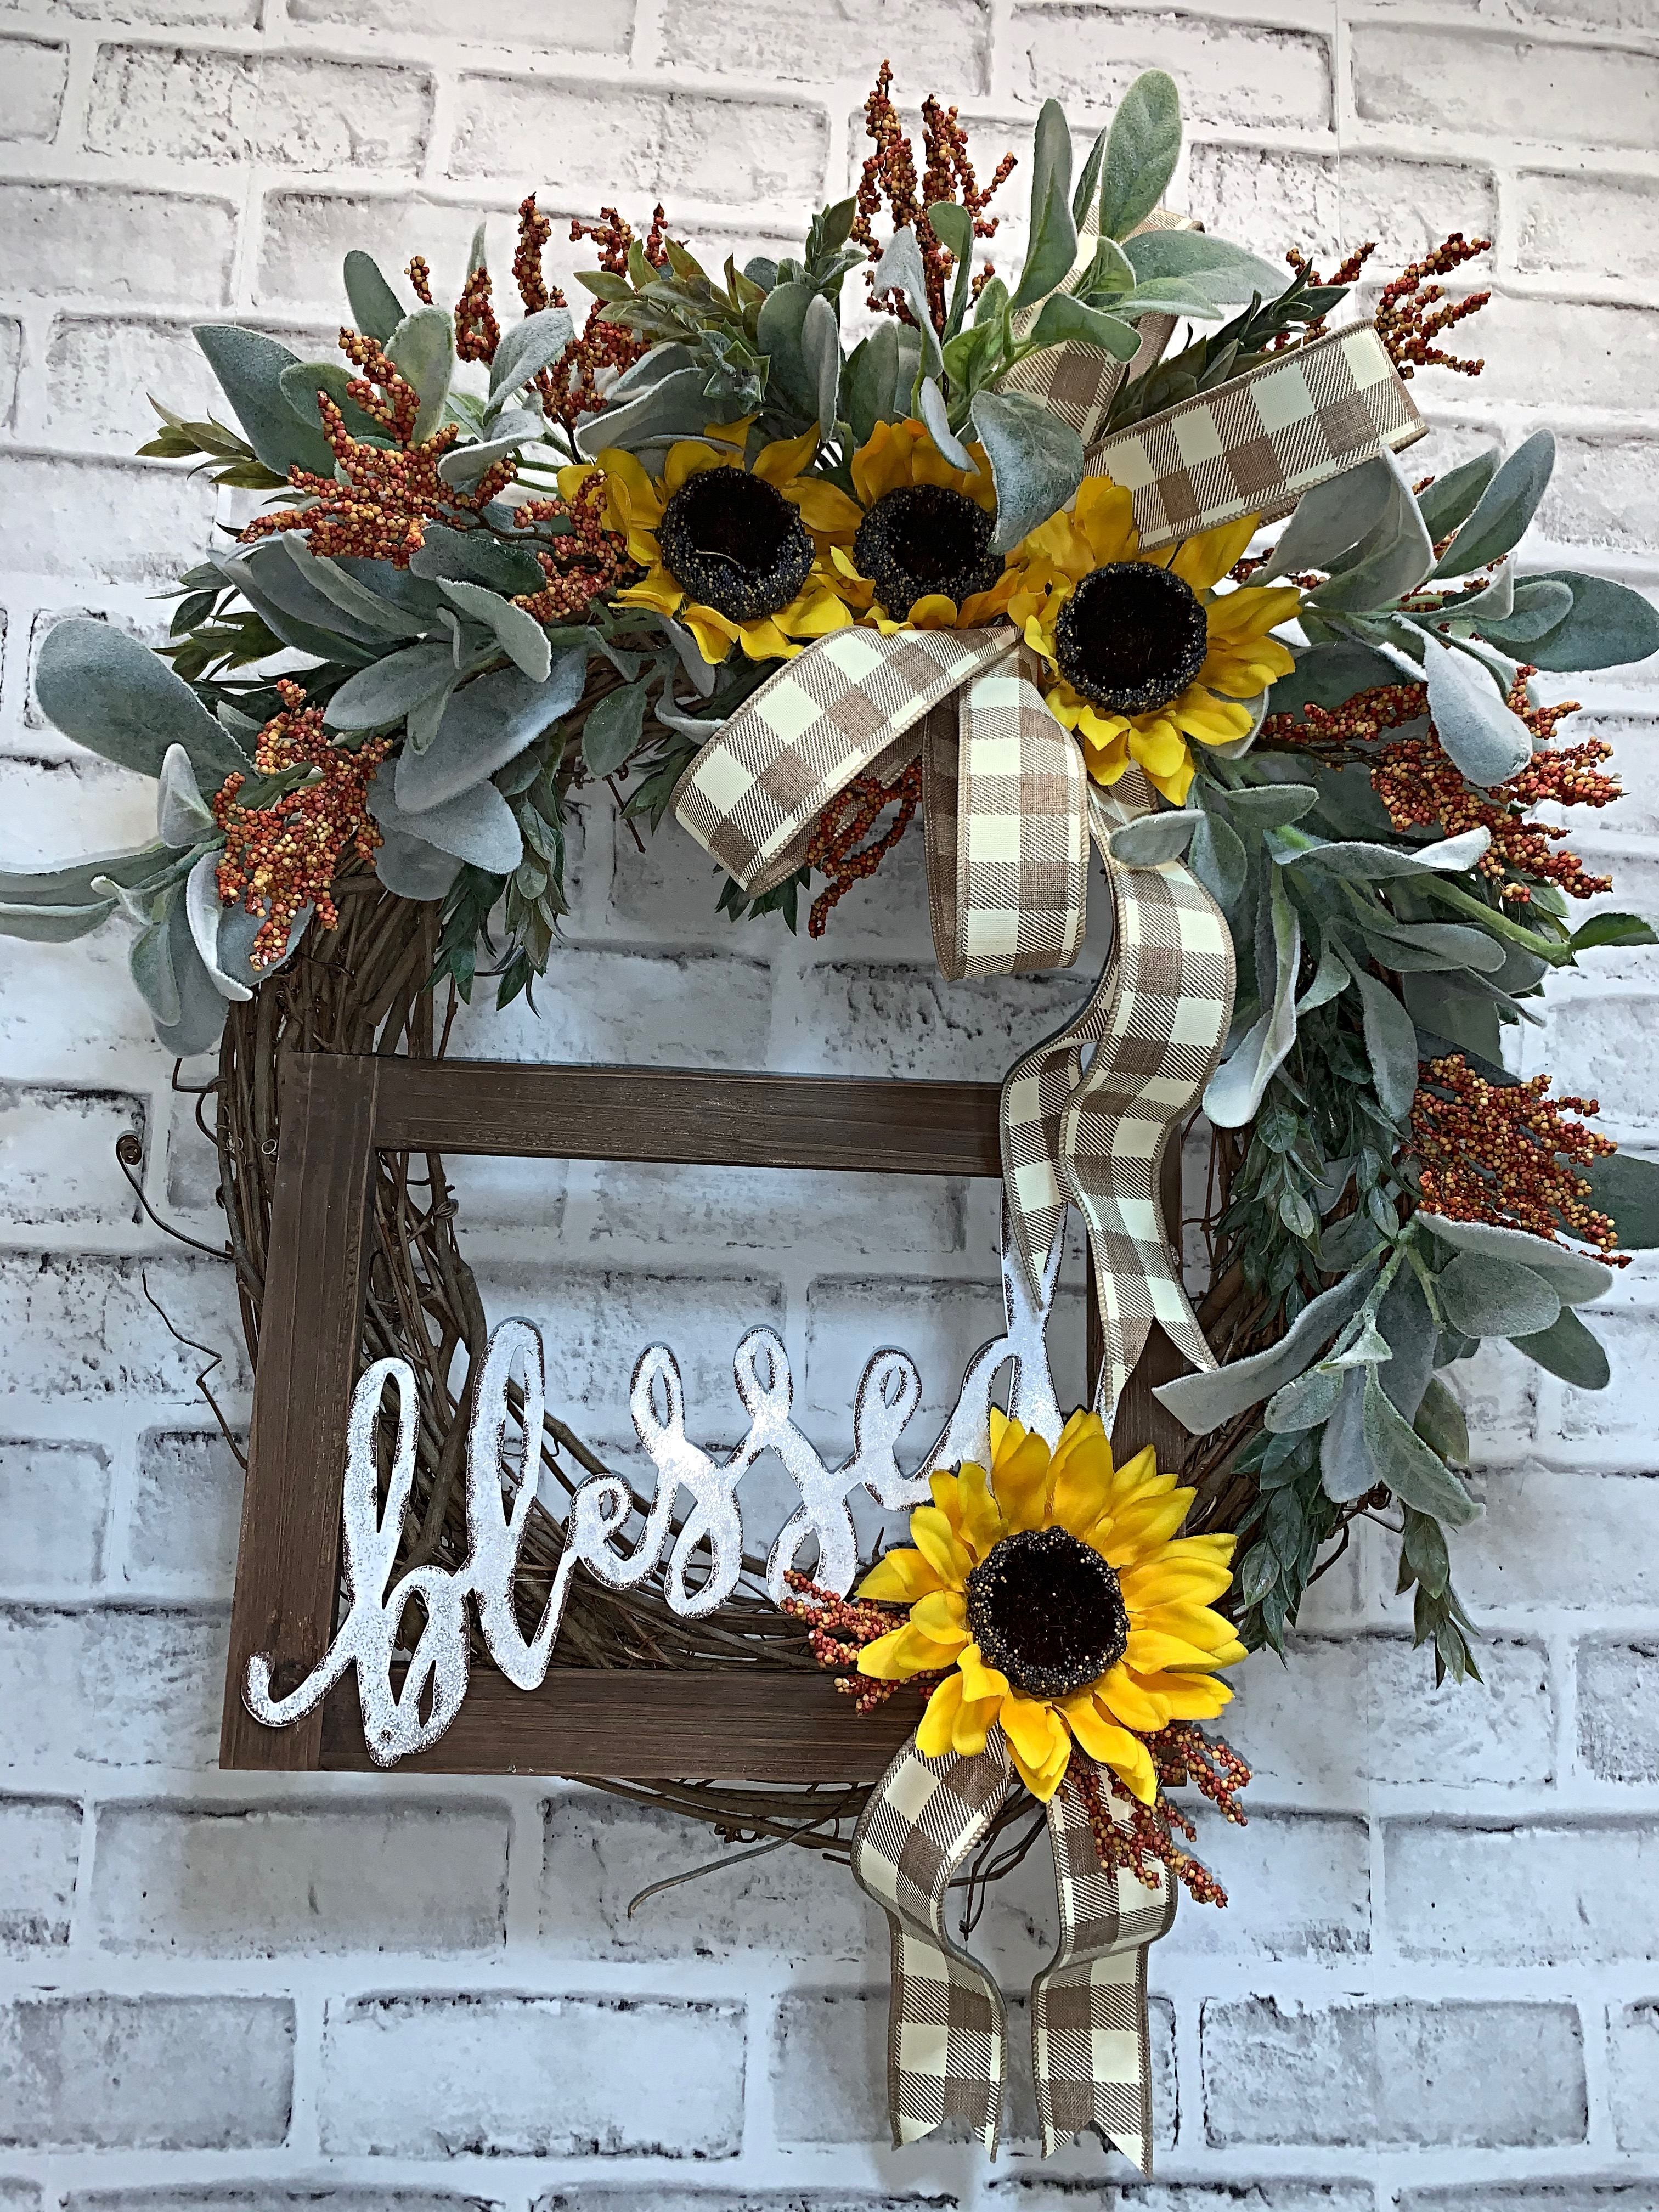 Fall Wreath Free Shipping Blessed Fall Wreath For Front Door Sunflower Wreath Sunflowers Lambs Ear Door Wreath Front Door Wreath Fall Berries Fall Grapevine Wreath Simple Fall Wreath Home Decor Fall Decor